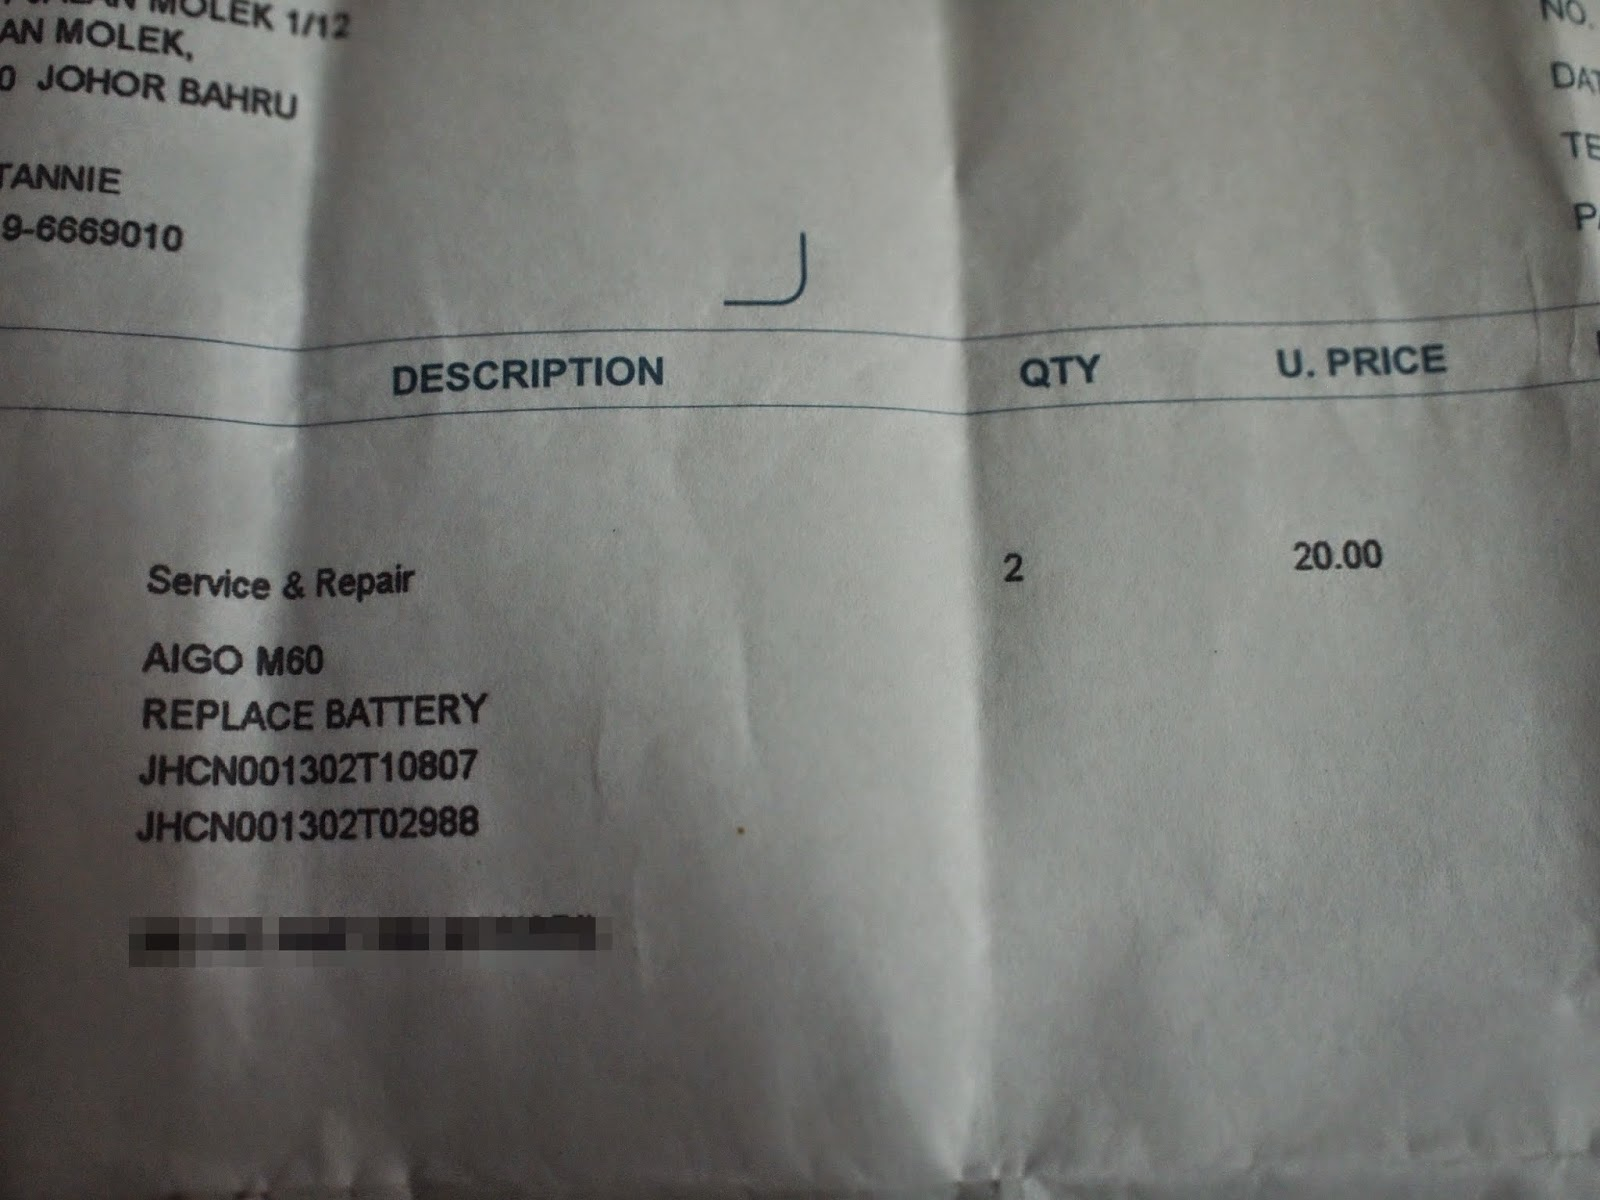 aigoPad M60 - Final Invoice (Battery Replacement)